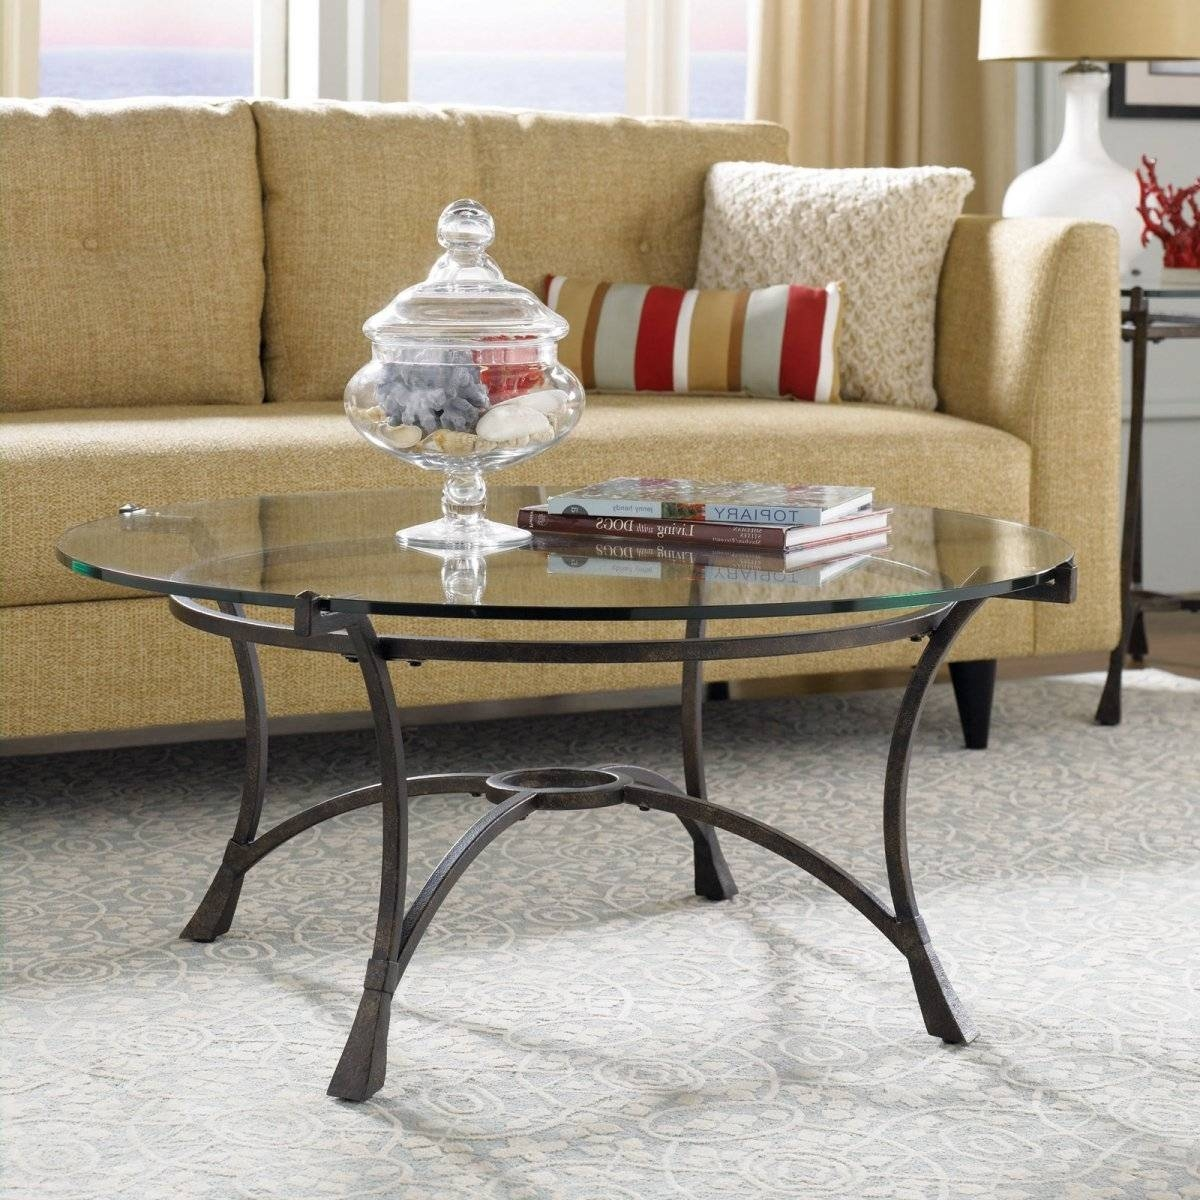 Coffee Table : Wayfair Glass Coffee Table In Splendid Round Coffee inside Wayfair Coffee Table Sets (Image 1 of 30)